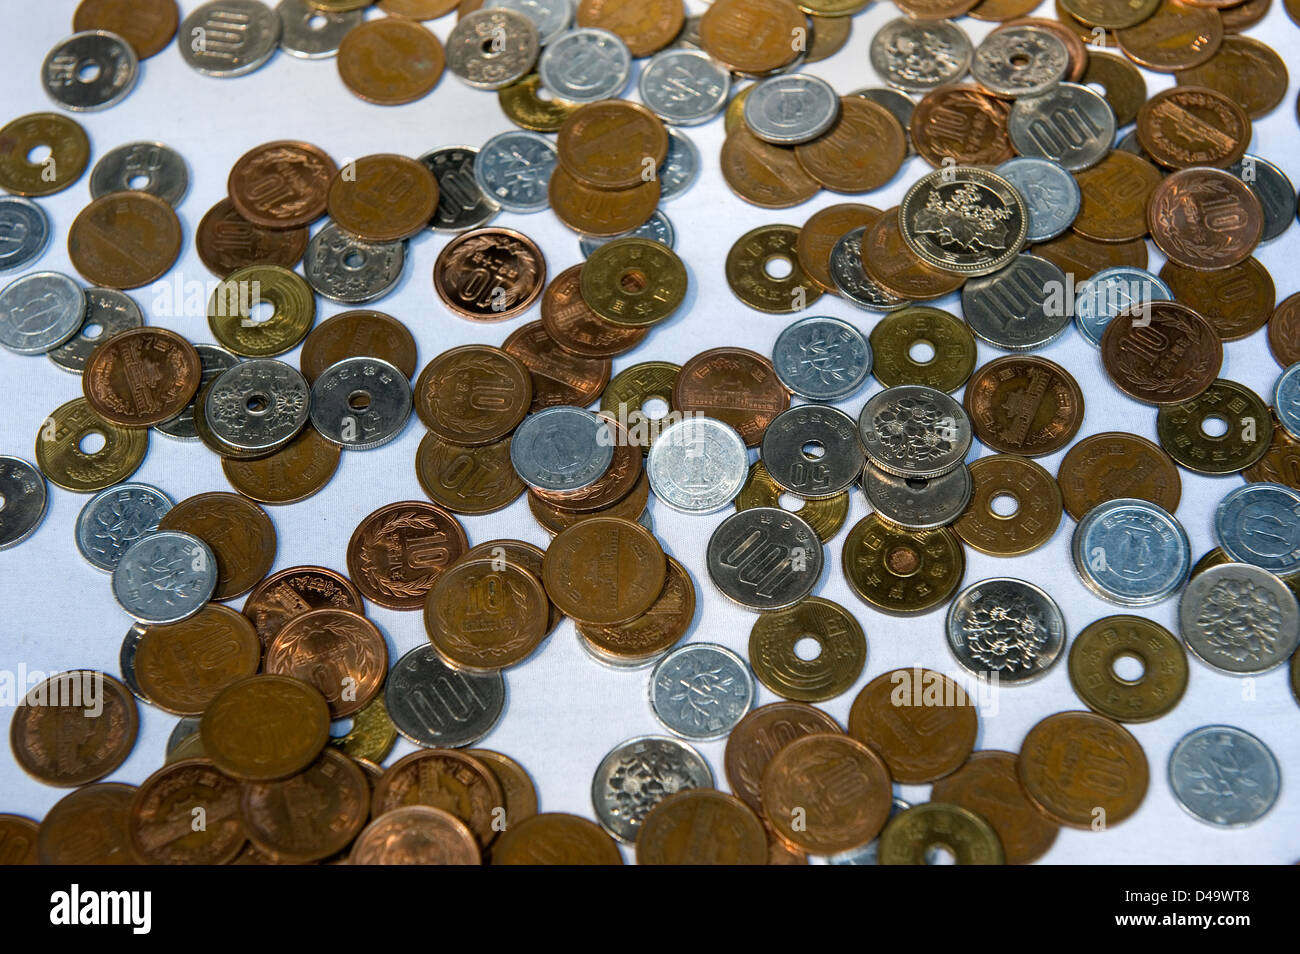 worksheet Yen Coins coins of japan japanese 10 yen coin stock photo royalty free 1 5 50 100 and